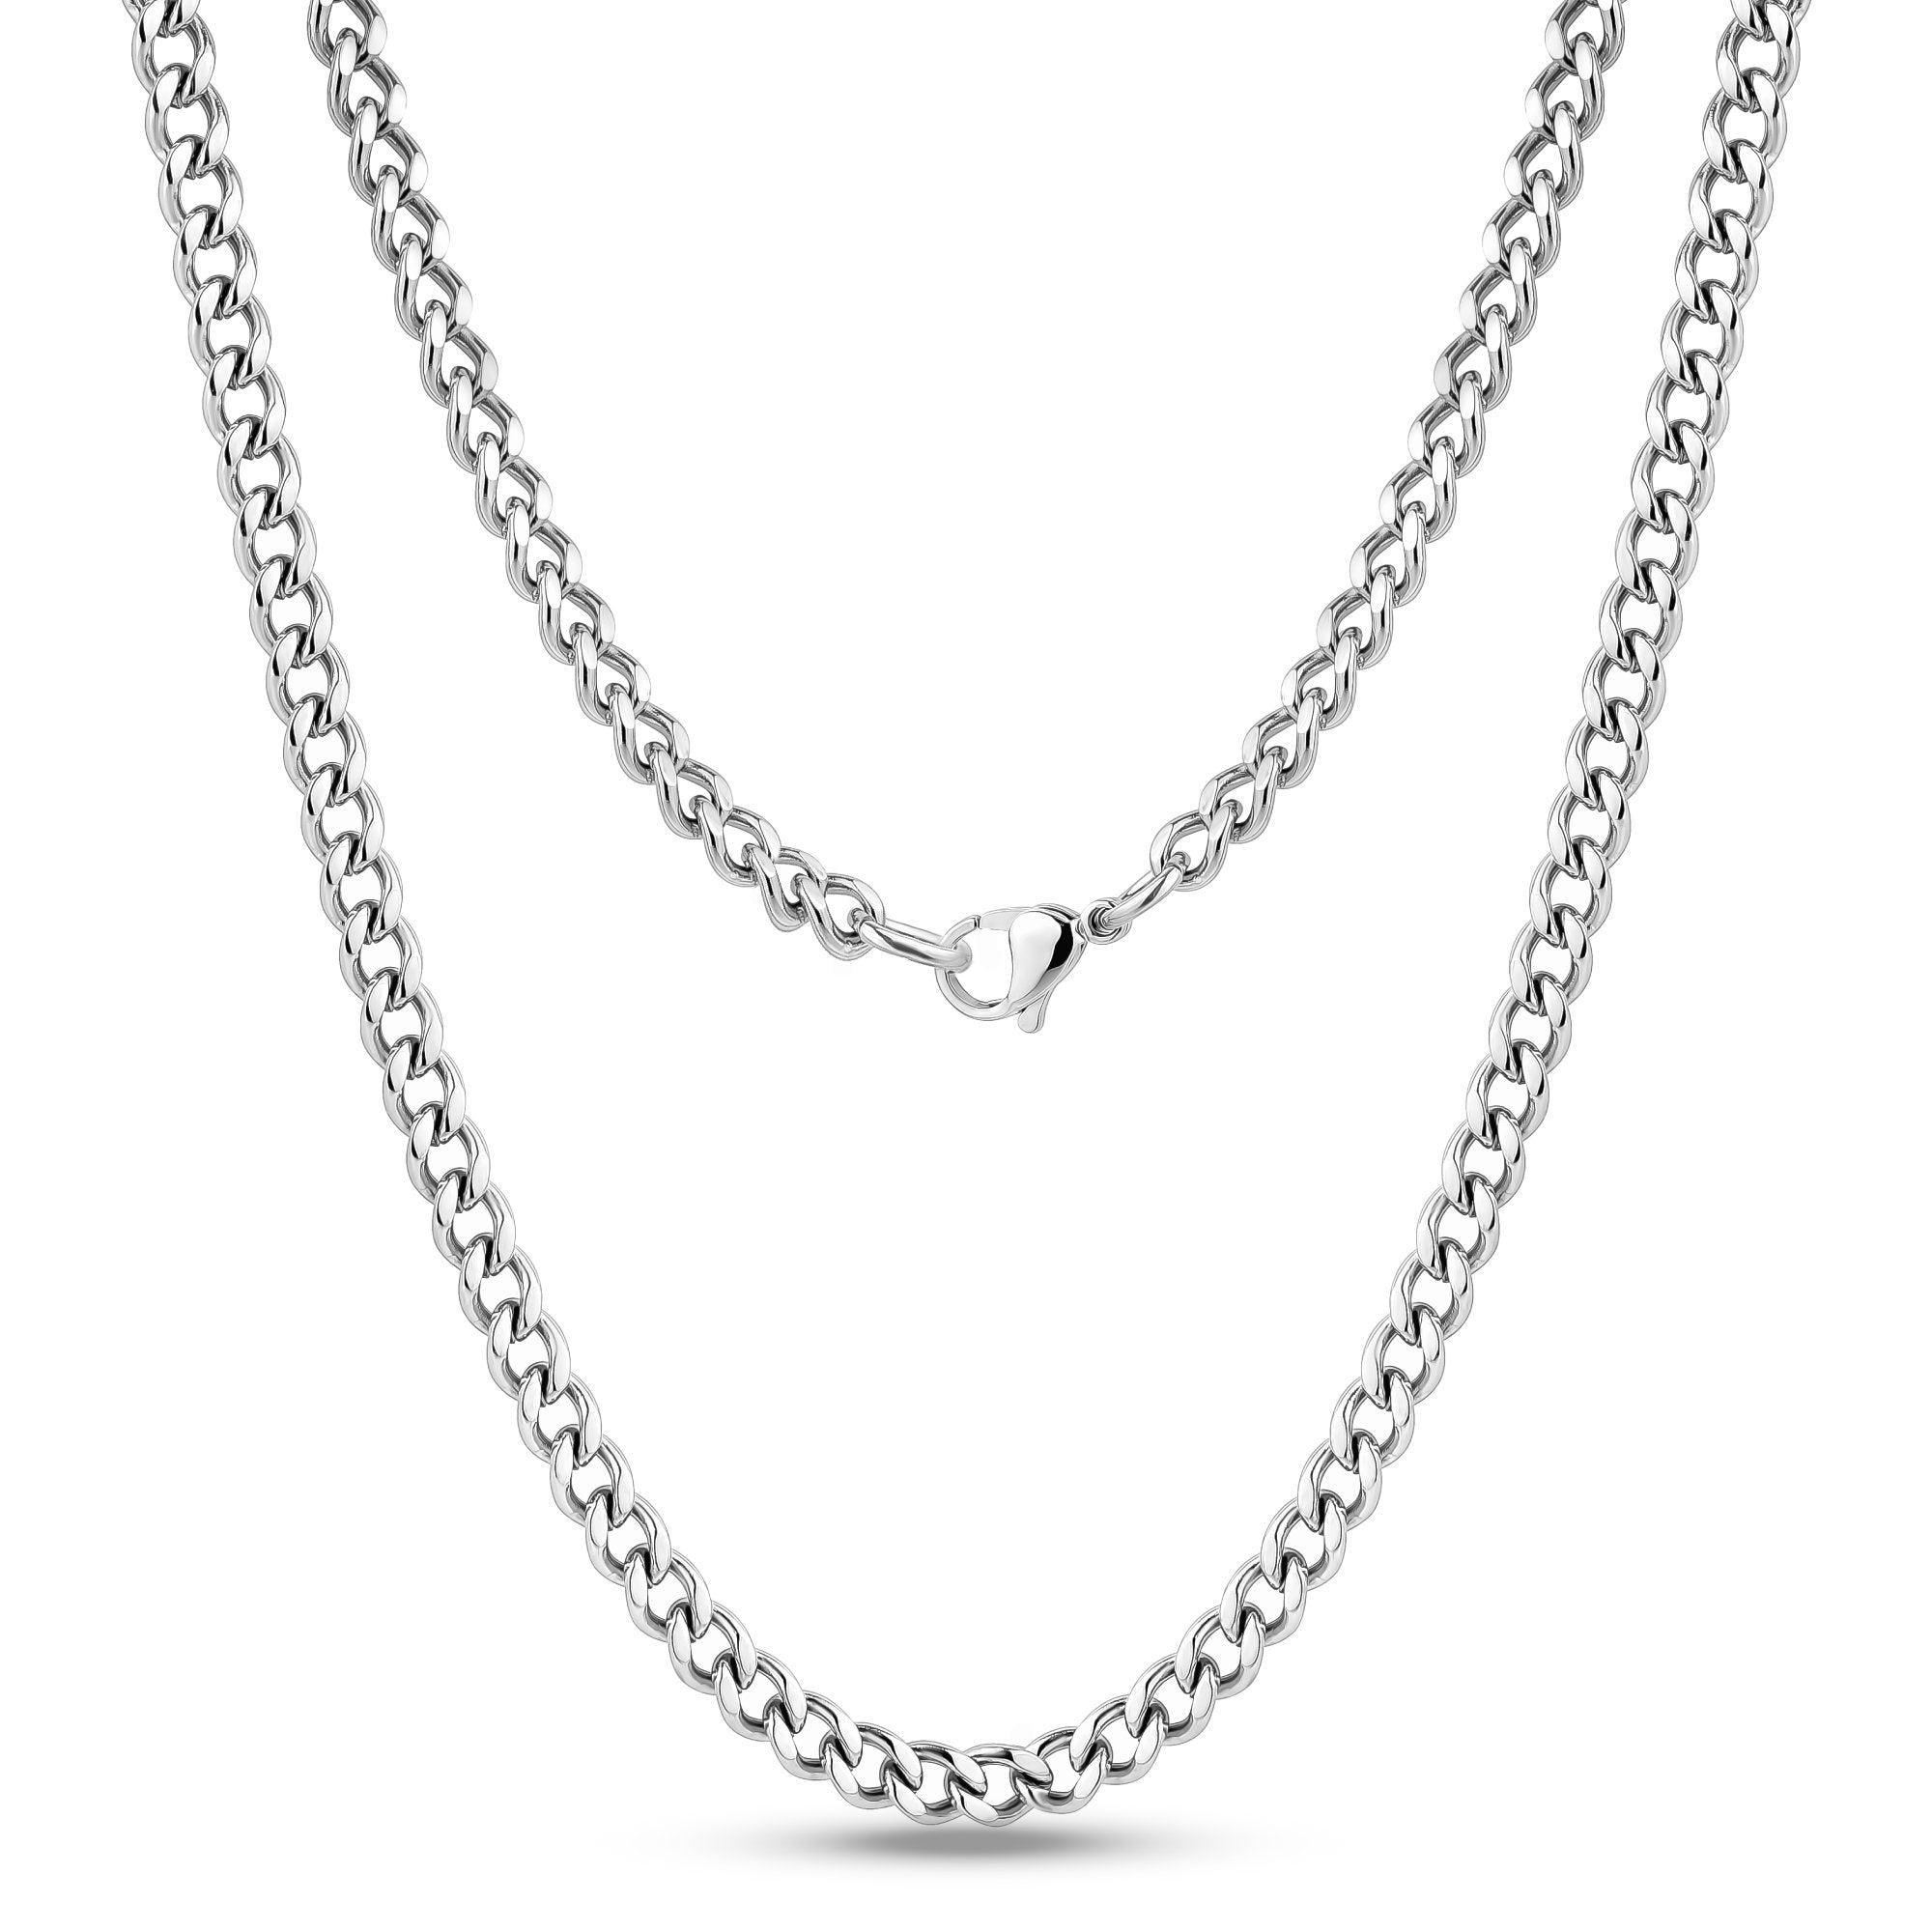 Men Necklace - 5mm Stainless Steel Cuban Link Chain Necklace